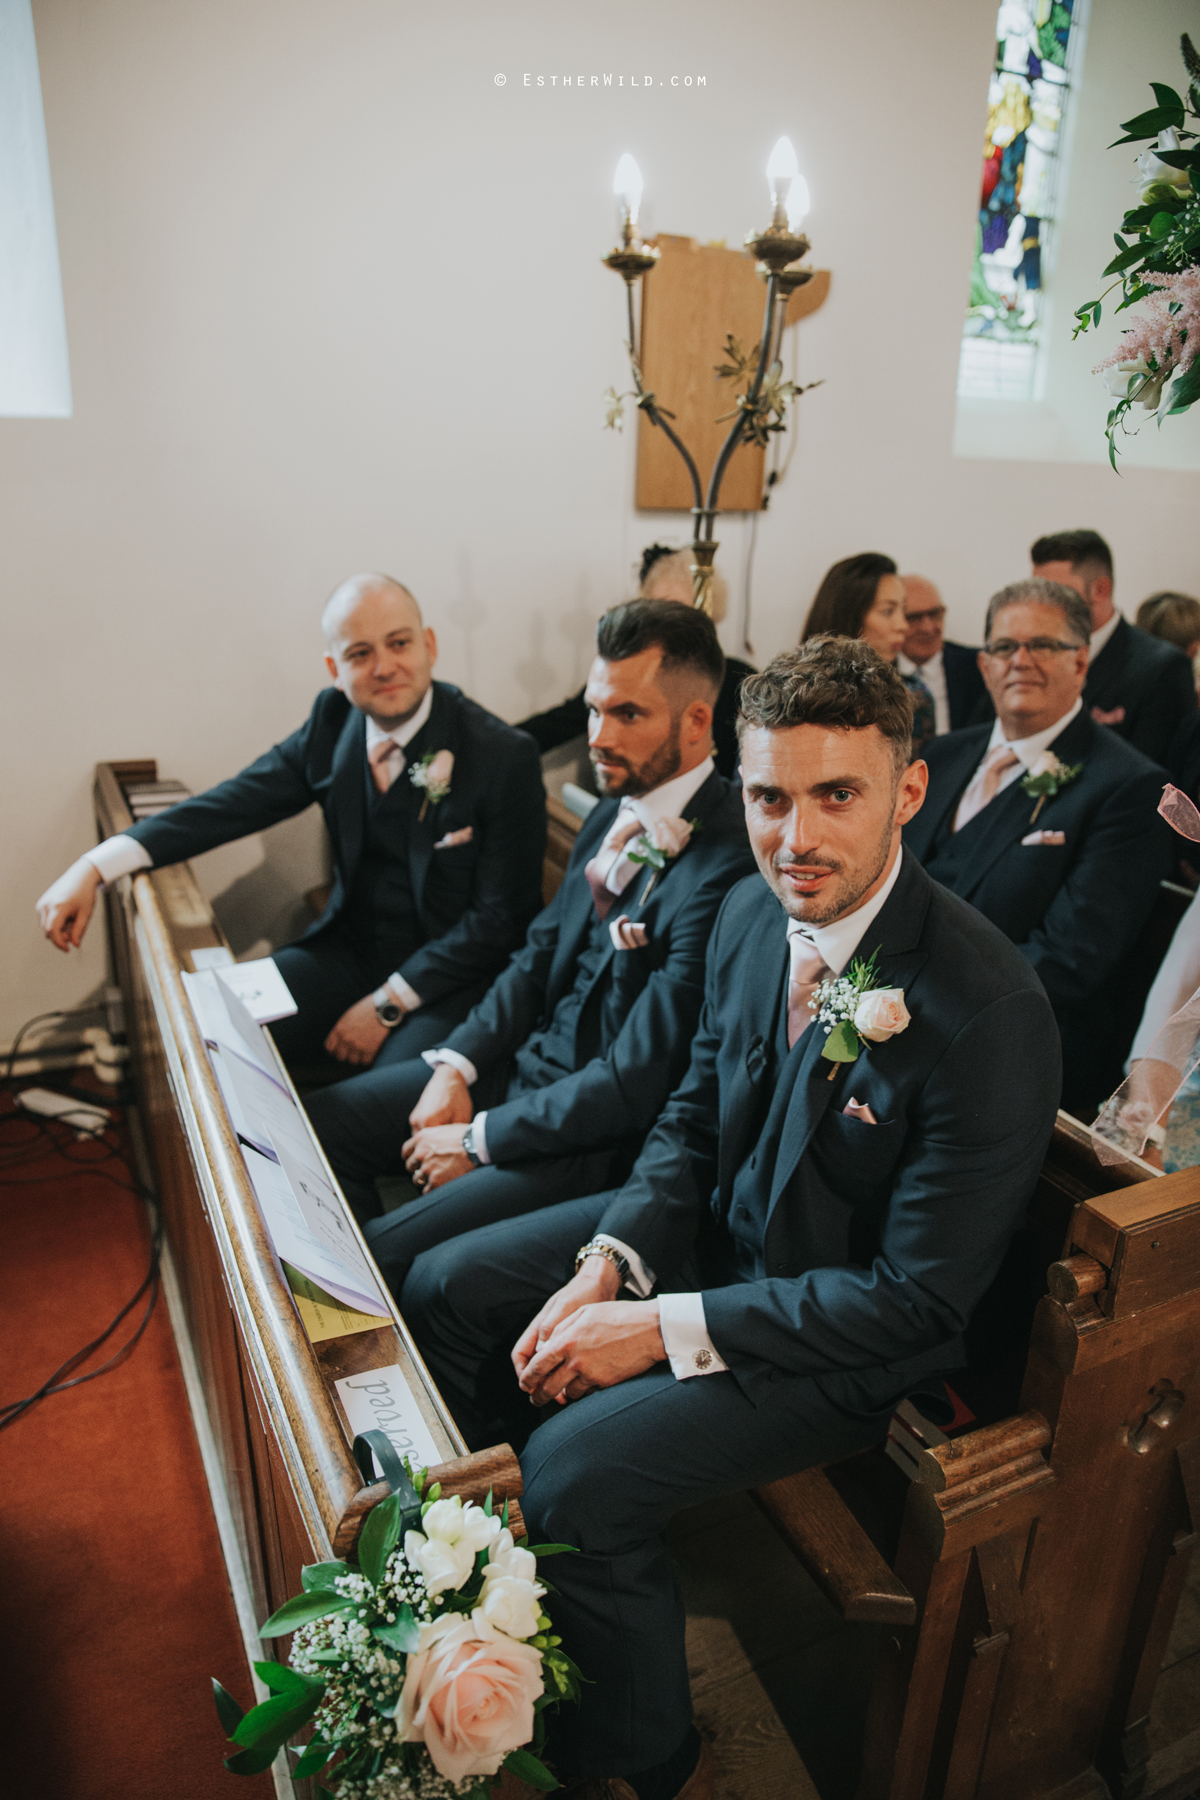 Wootton_Wedding_Copyright_Esther_Wild_Photographer_IMG_0767.jpg